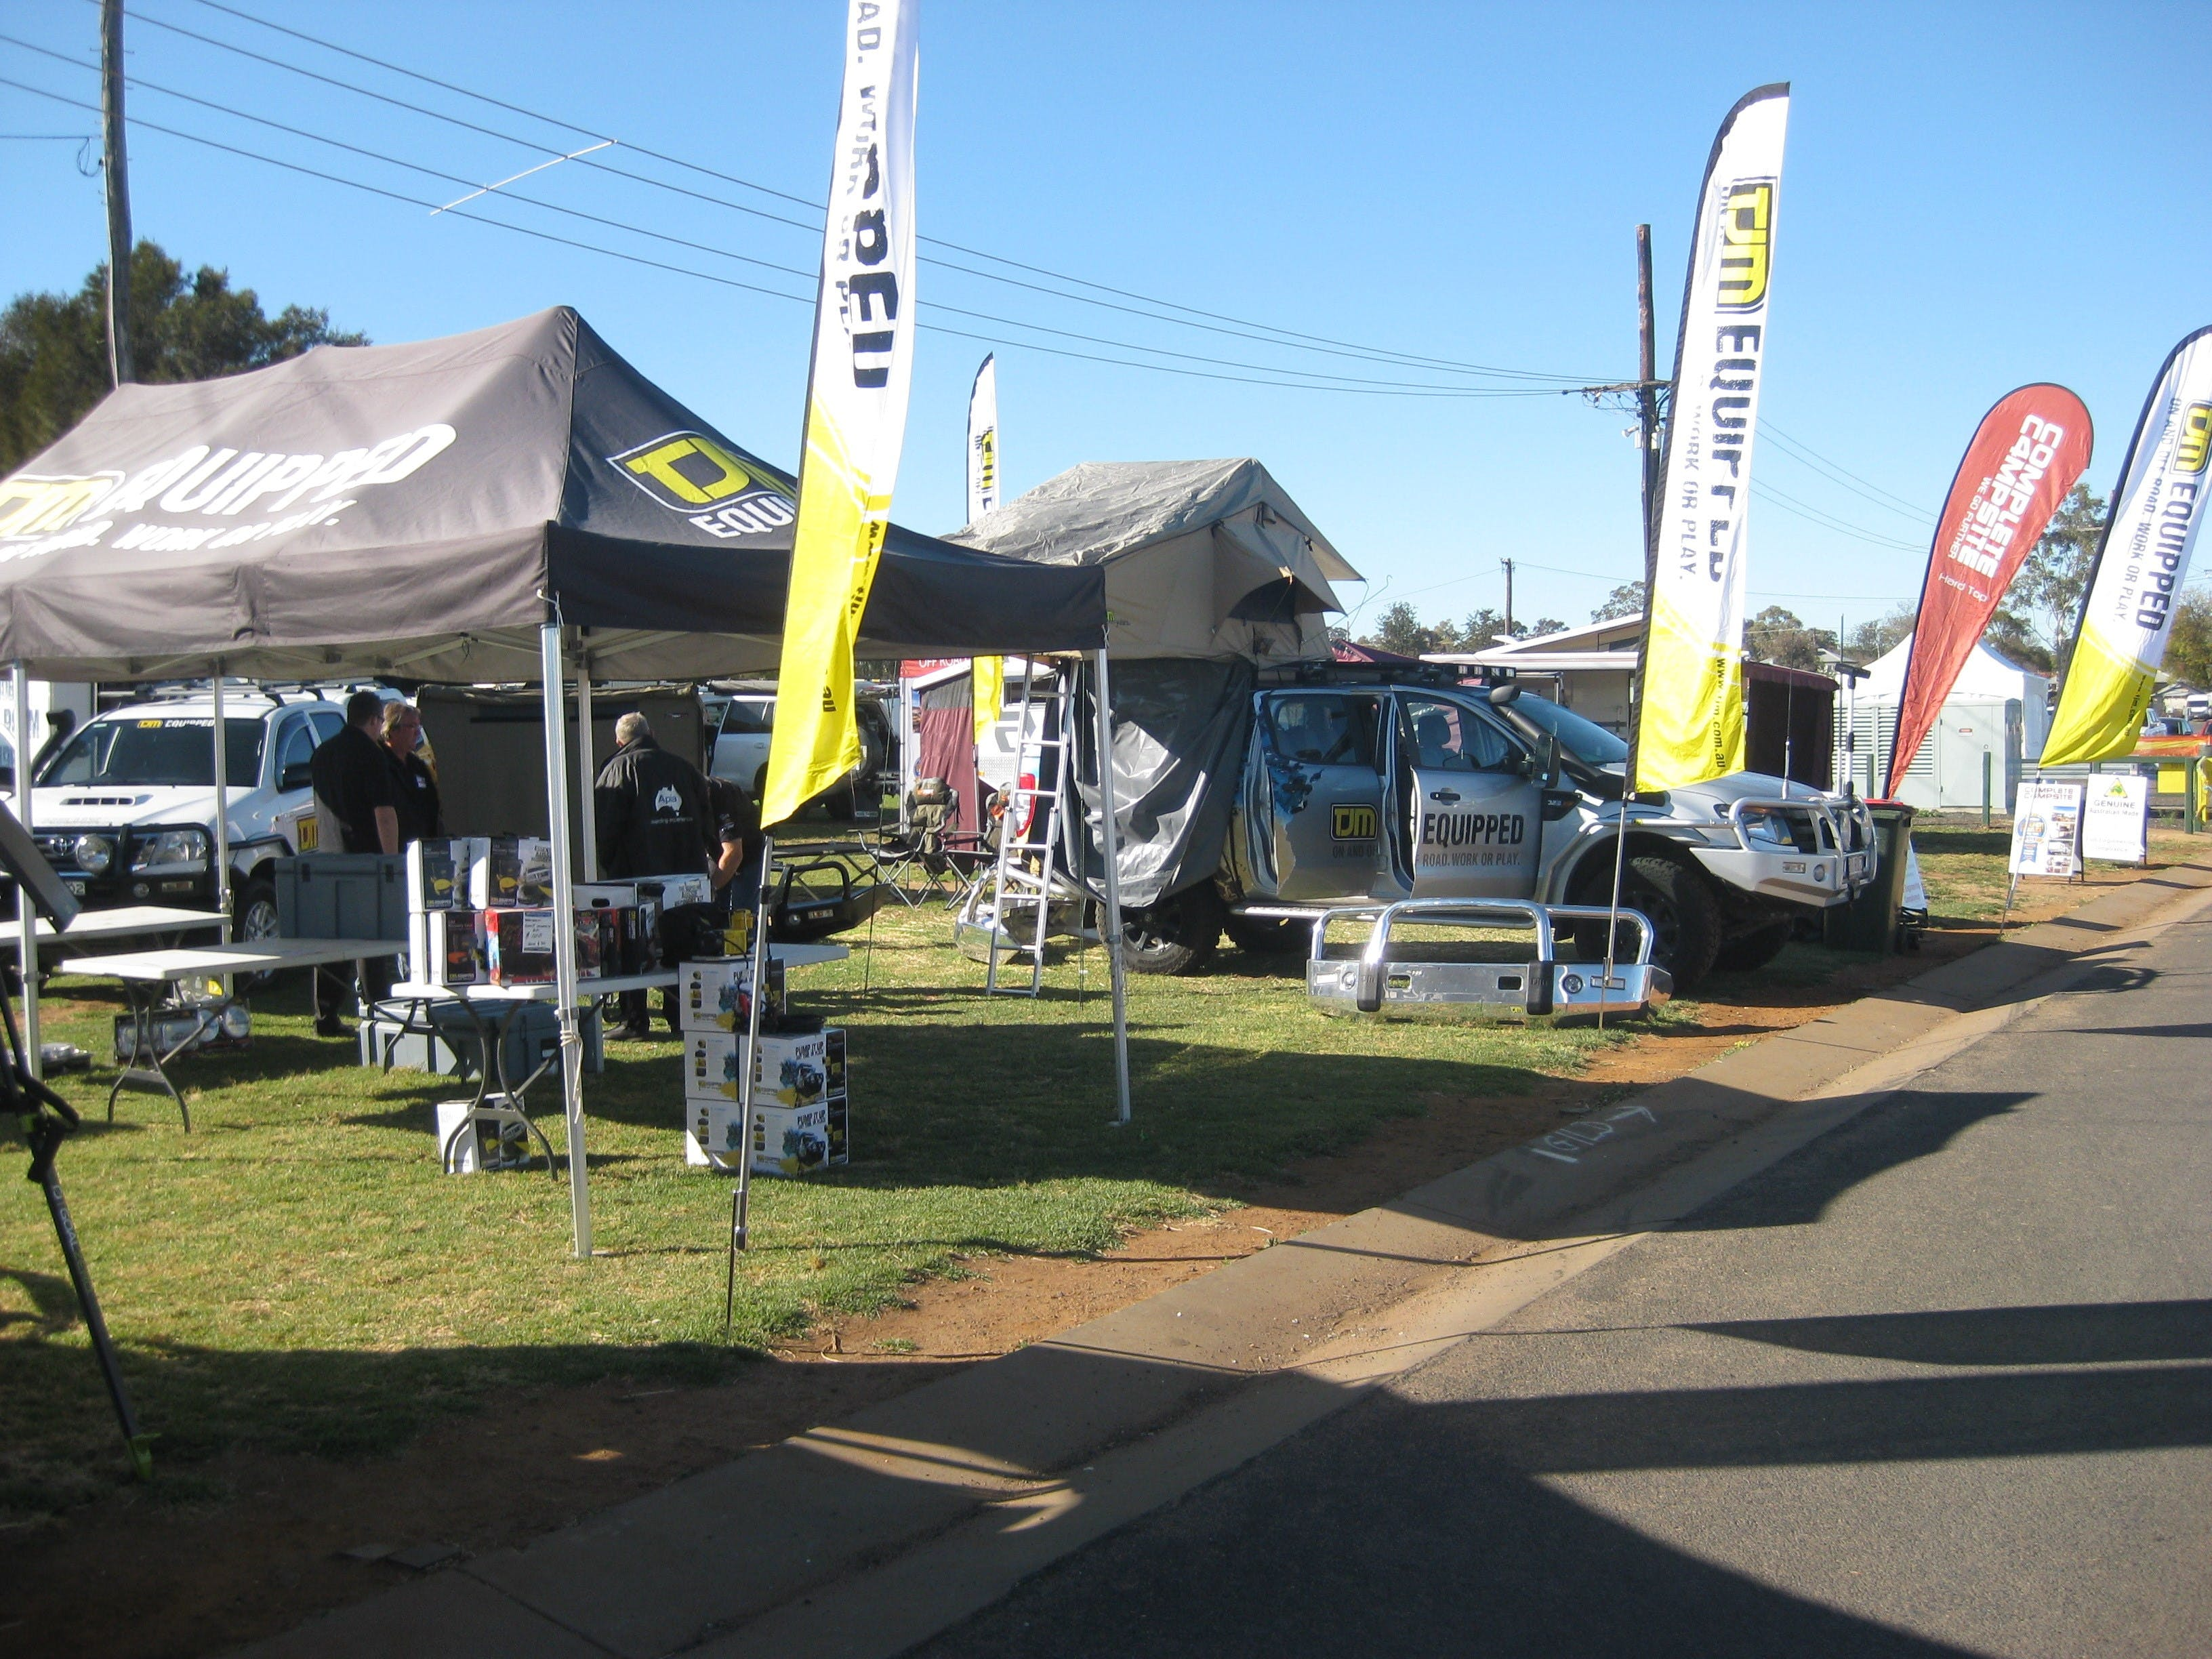 Orana Caravan Camping 4WD Fish and Boat Show - Accommodation Sydney